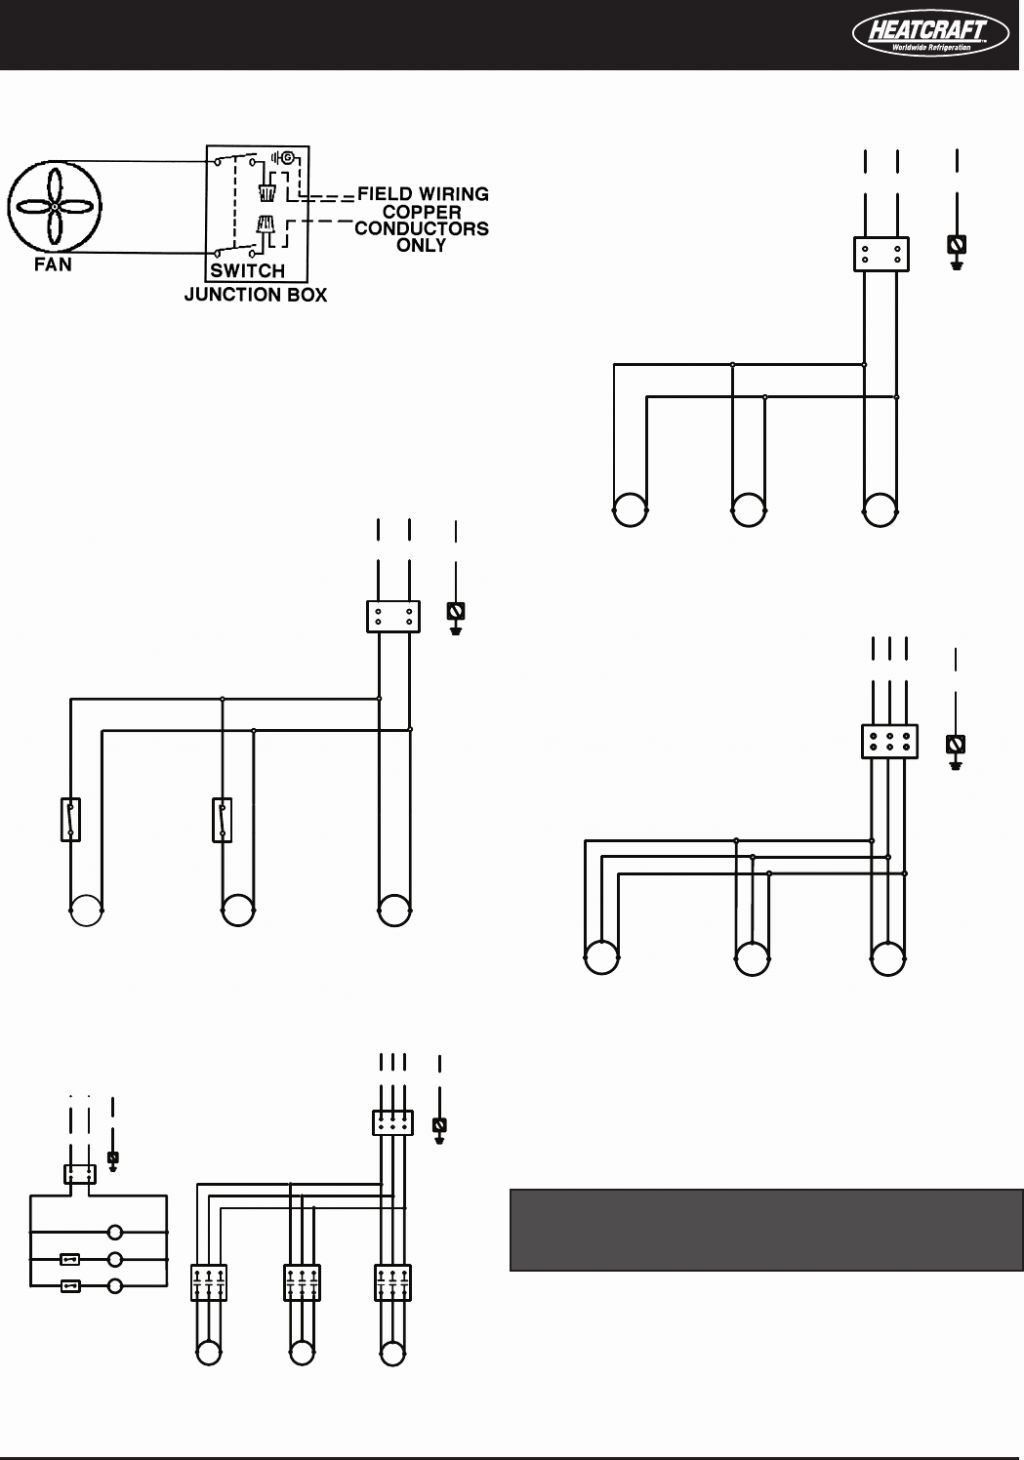 Bohn Freezer Wiring Diagrams